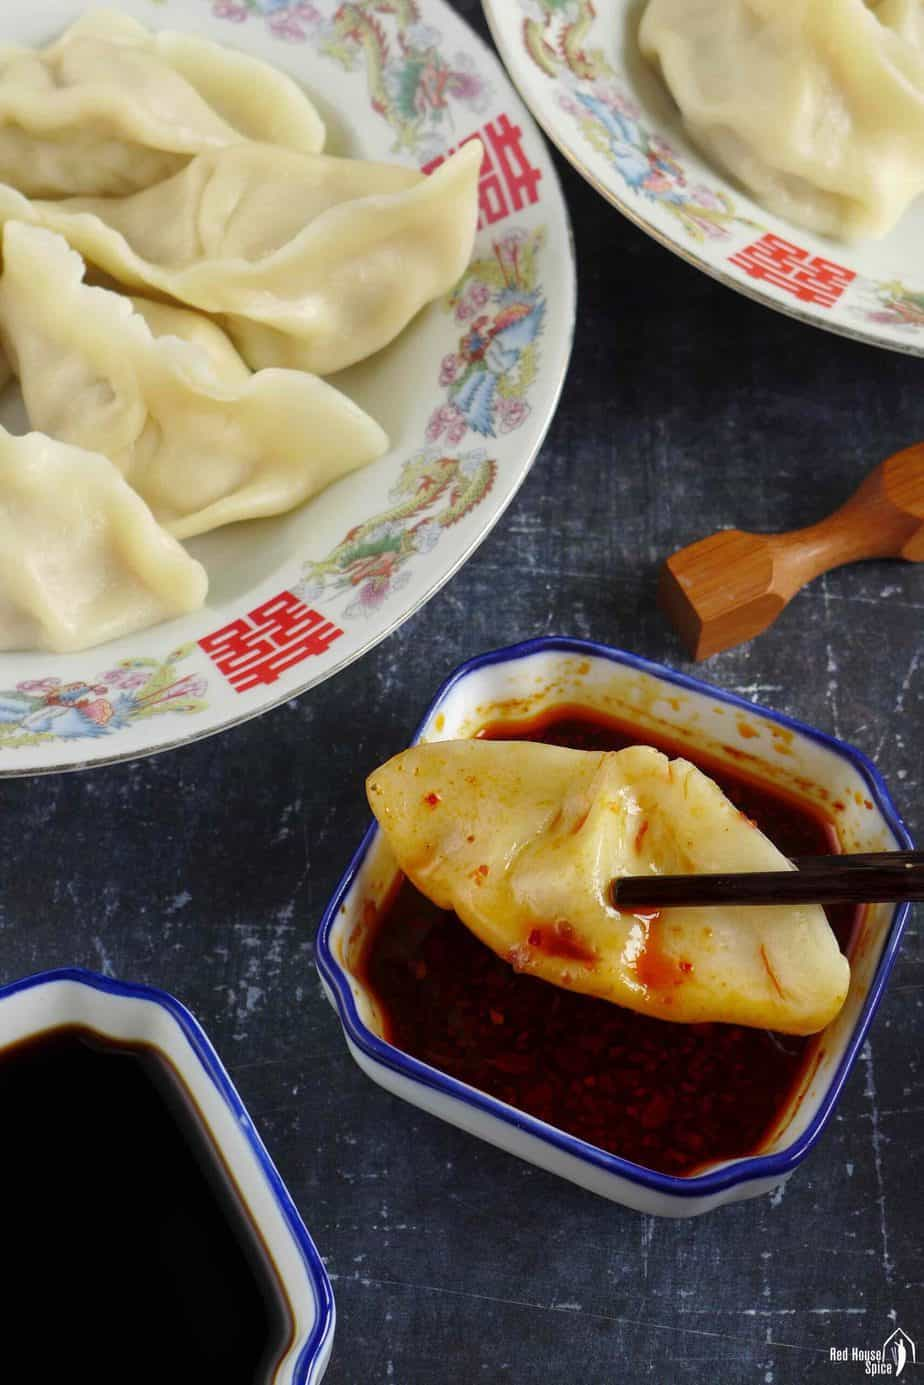 a boiled dumpling in chili dipping sauce